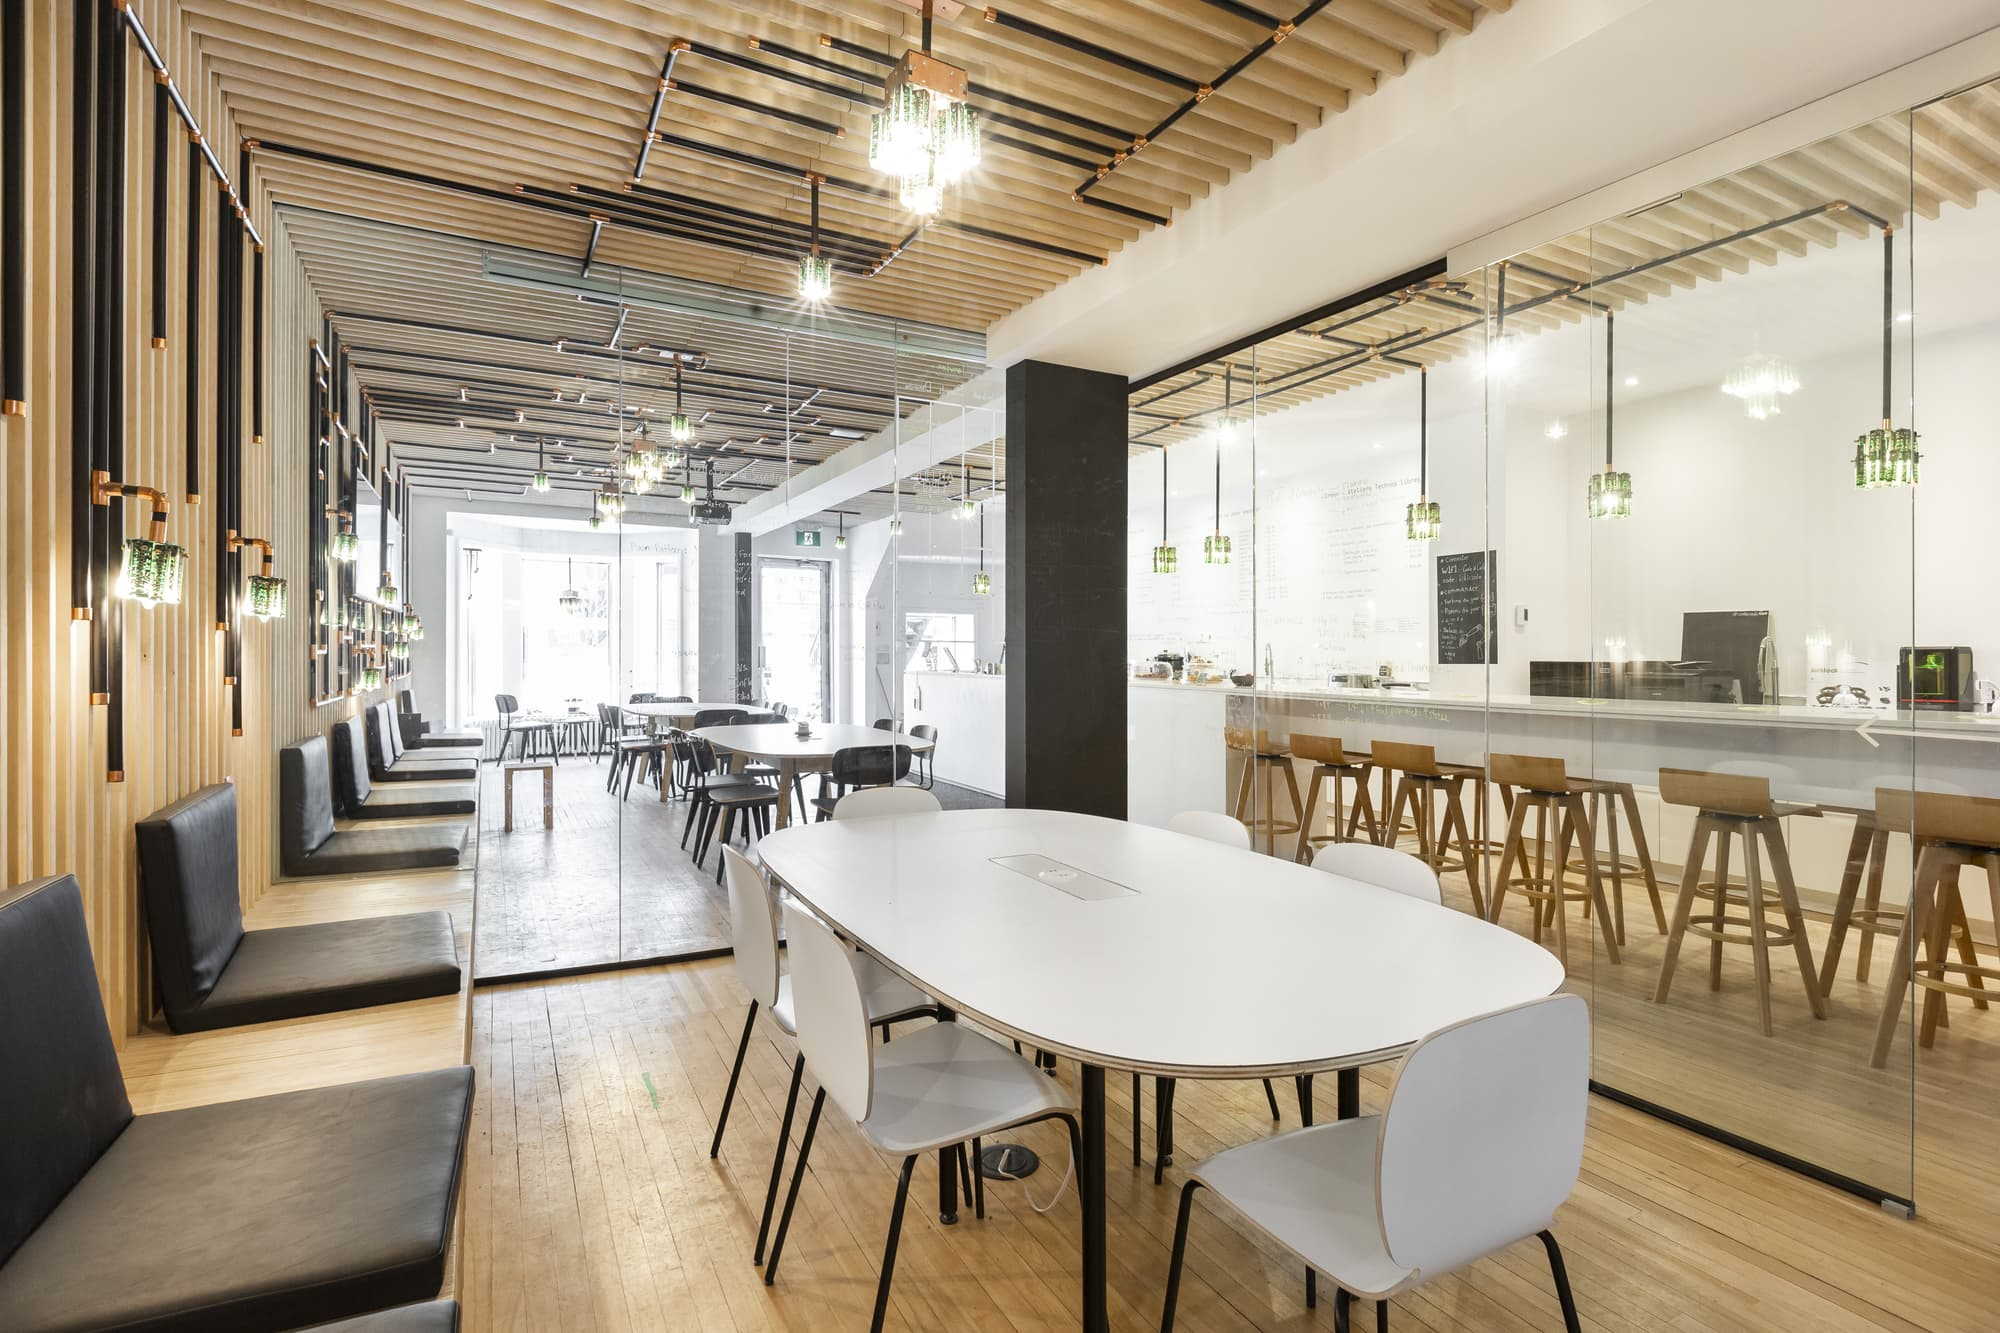 business renovation - coffe shop with white table and chairs